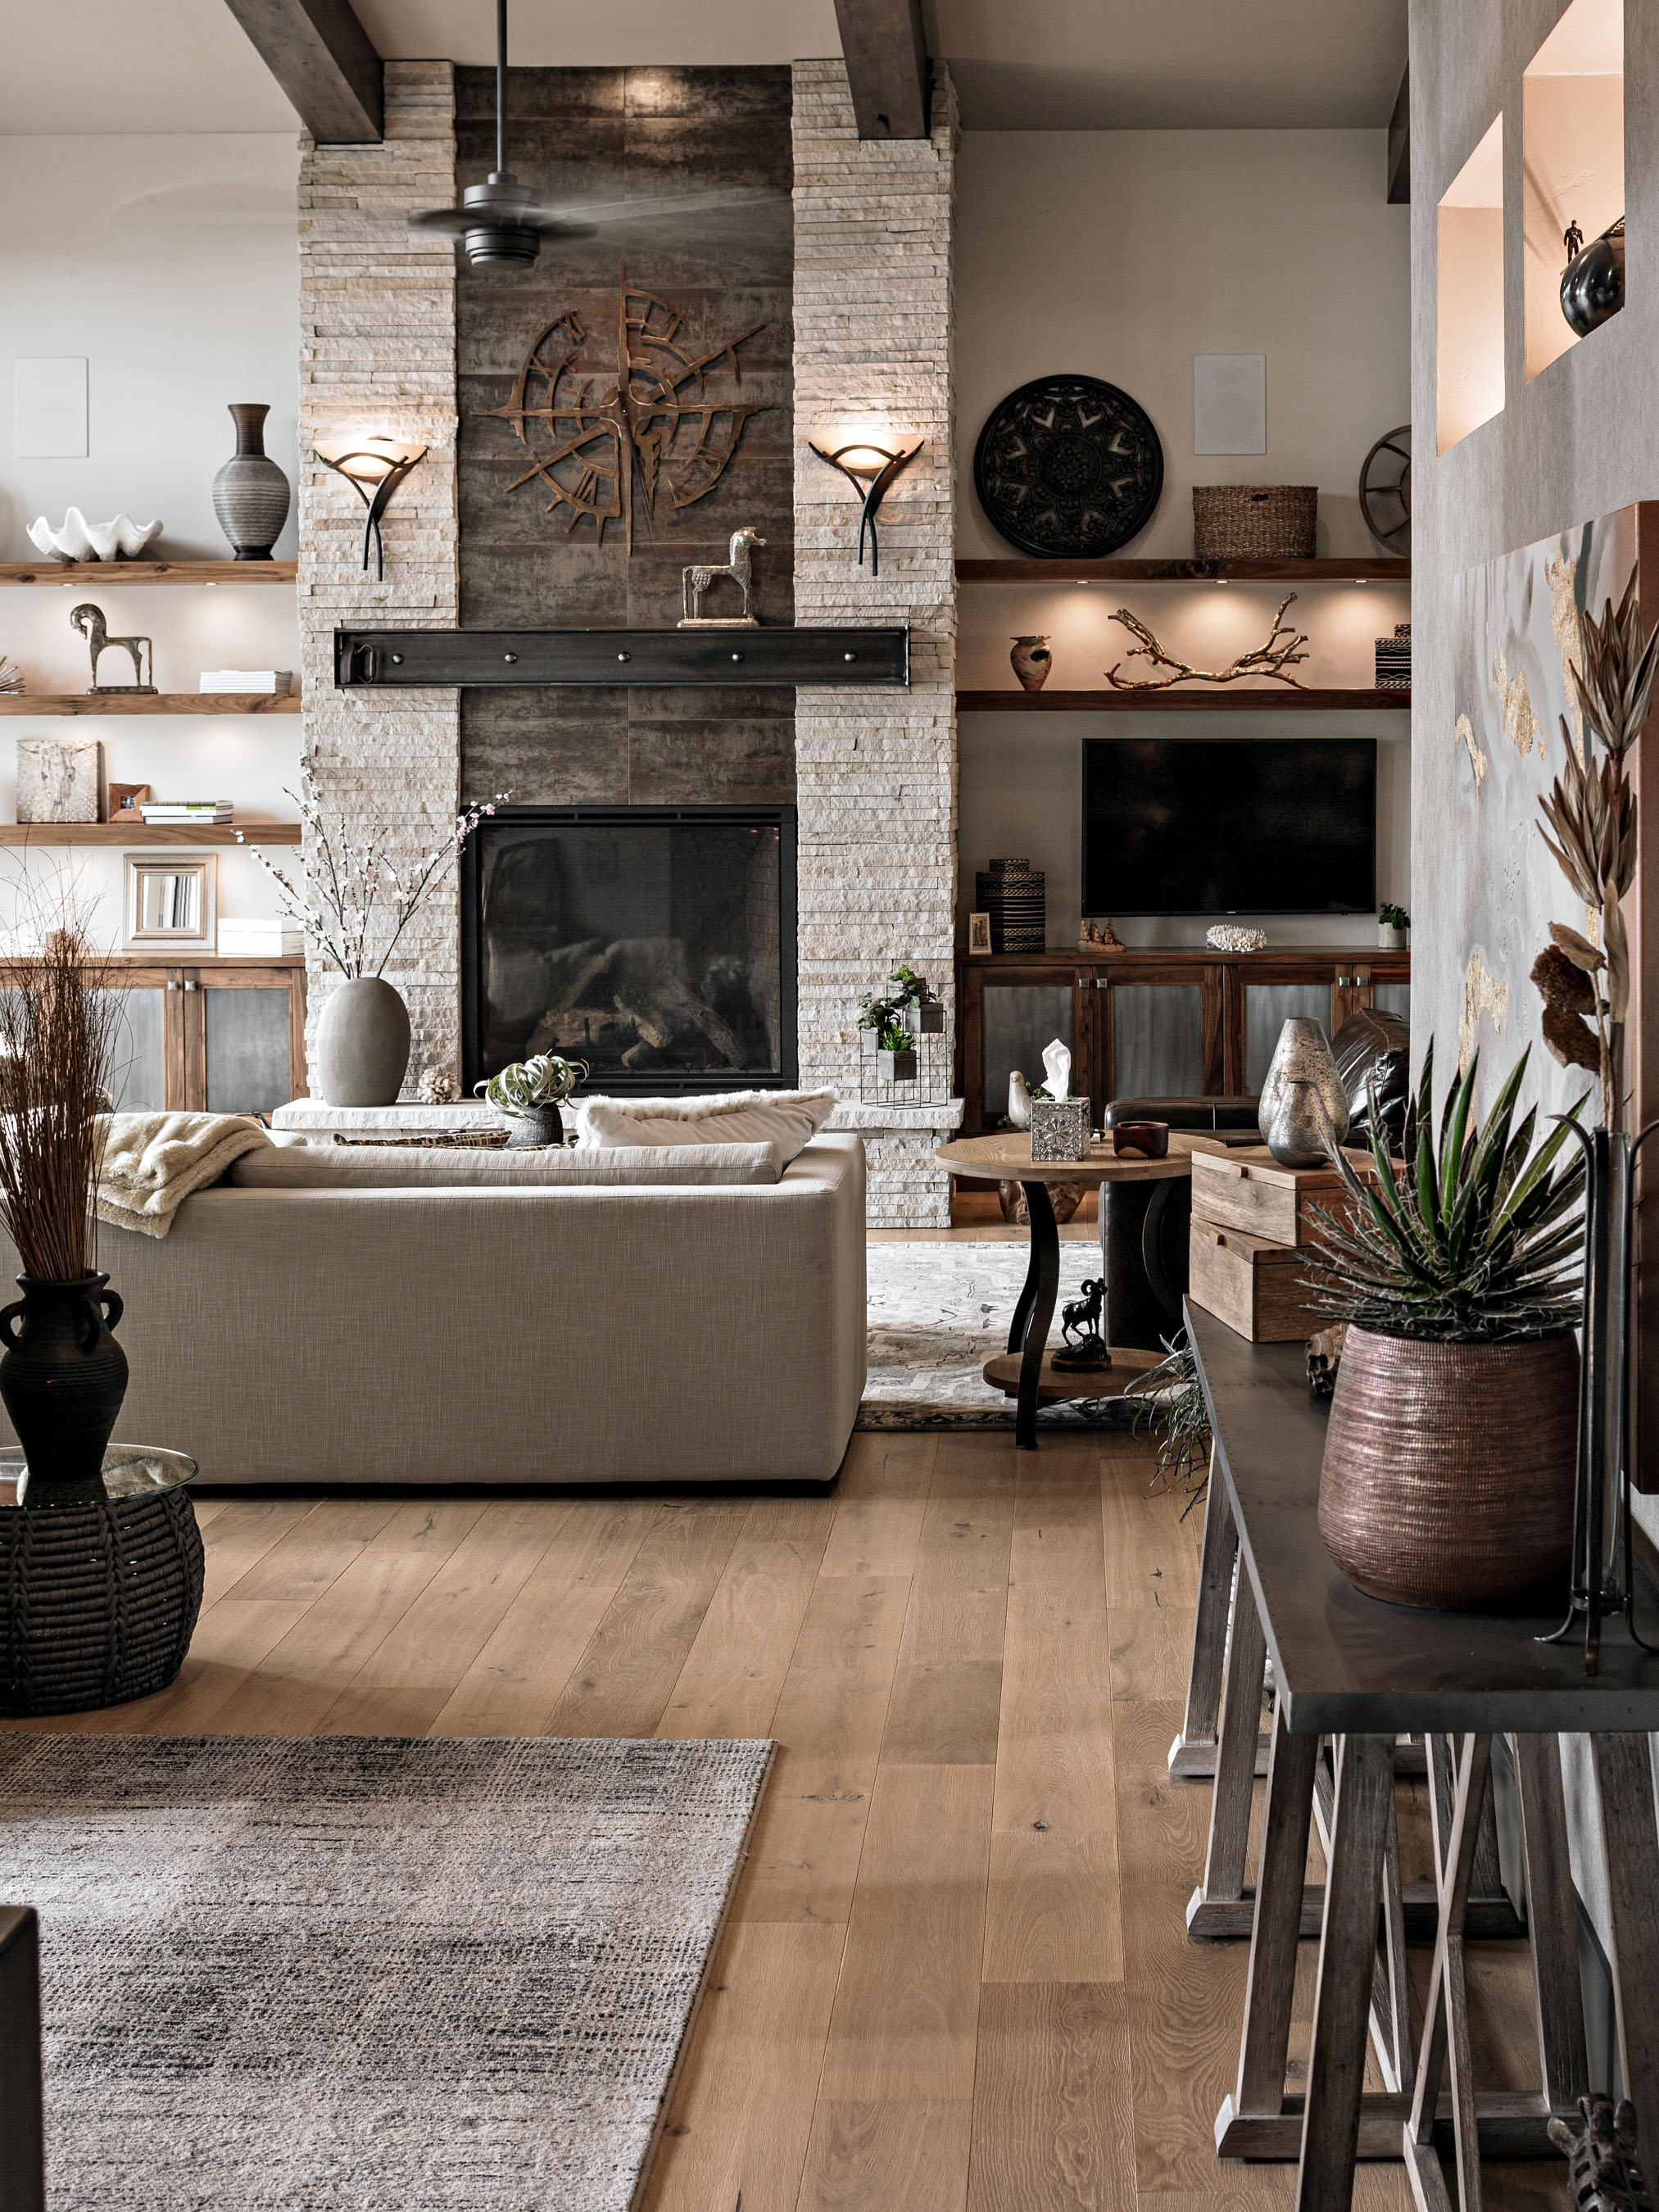 Interior photography of living room with stone fireplace–Loveland, Colorado residence located in Hidden Valley Estates.